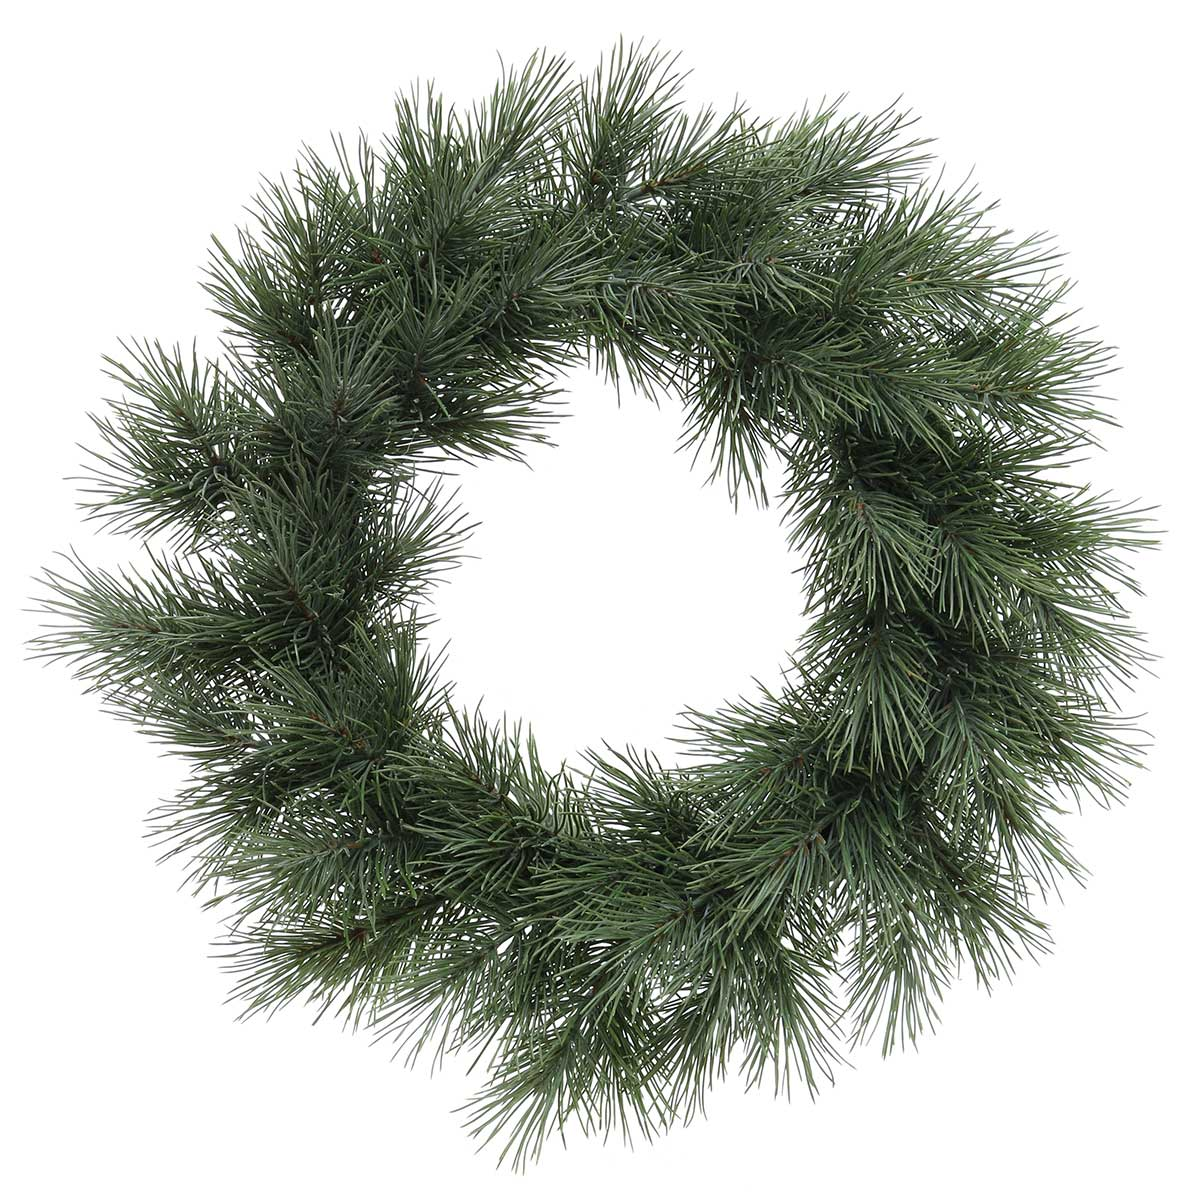 BLUE SPRUCE PINE WREATH